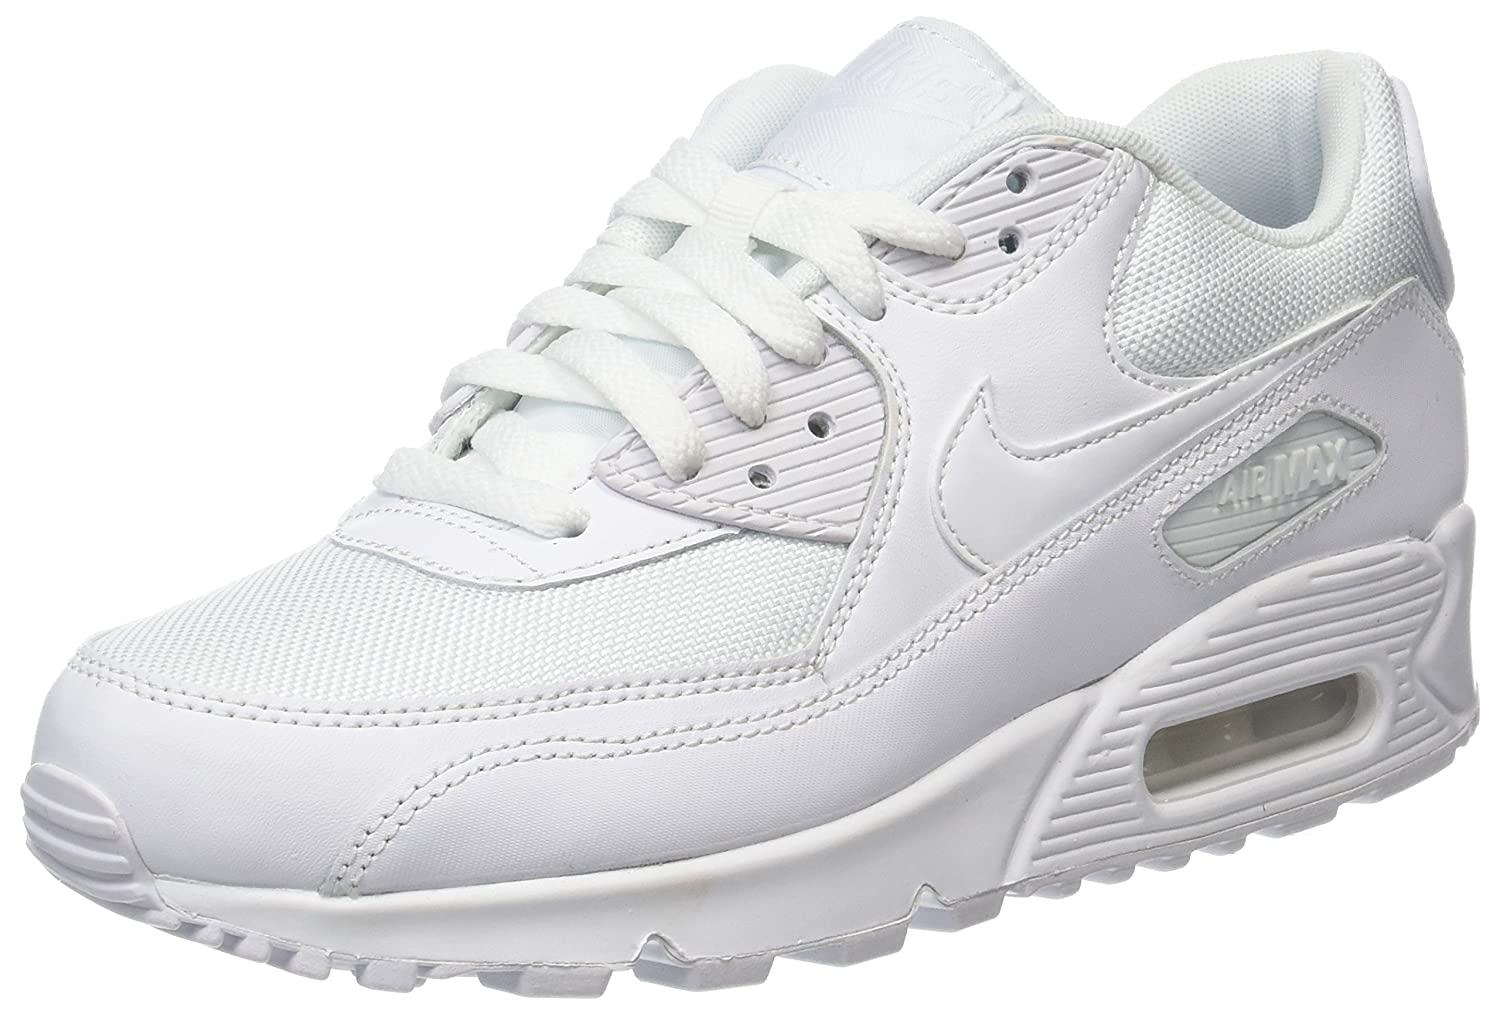 Nike Men's Air Max 90 Essential Low Top Sneakers